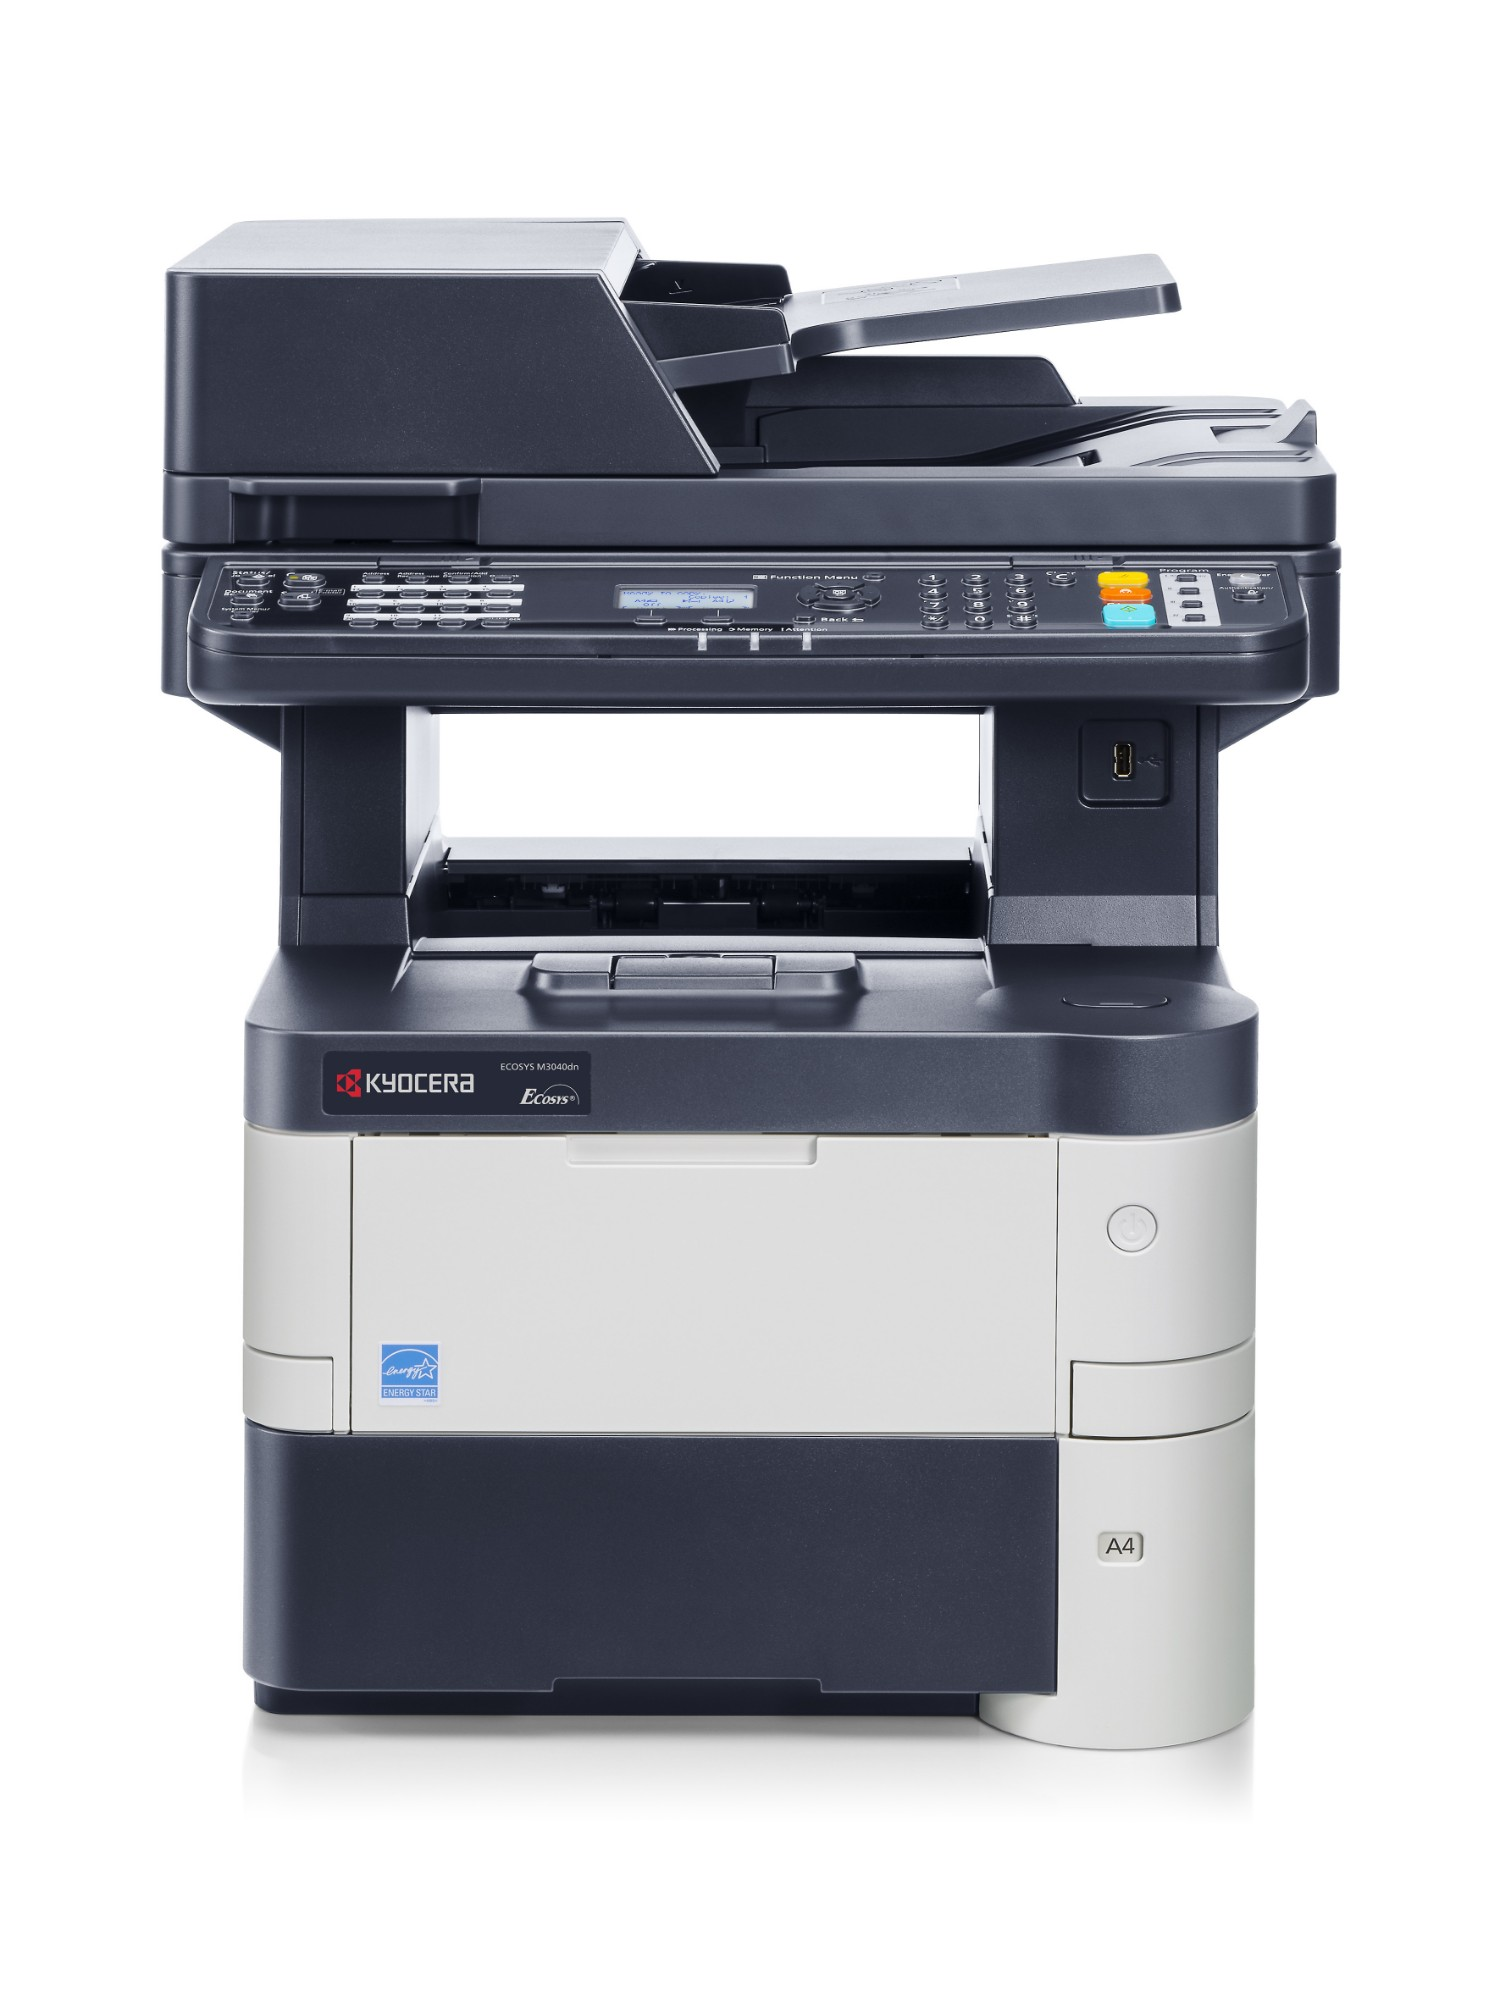 KYOCERA ECOSYS M3040dn A4 Mono Laser Multifunction, 40ppm Mono, 1,800 x 600 dpi,	2 Years Warranty